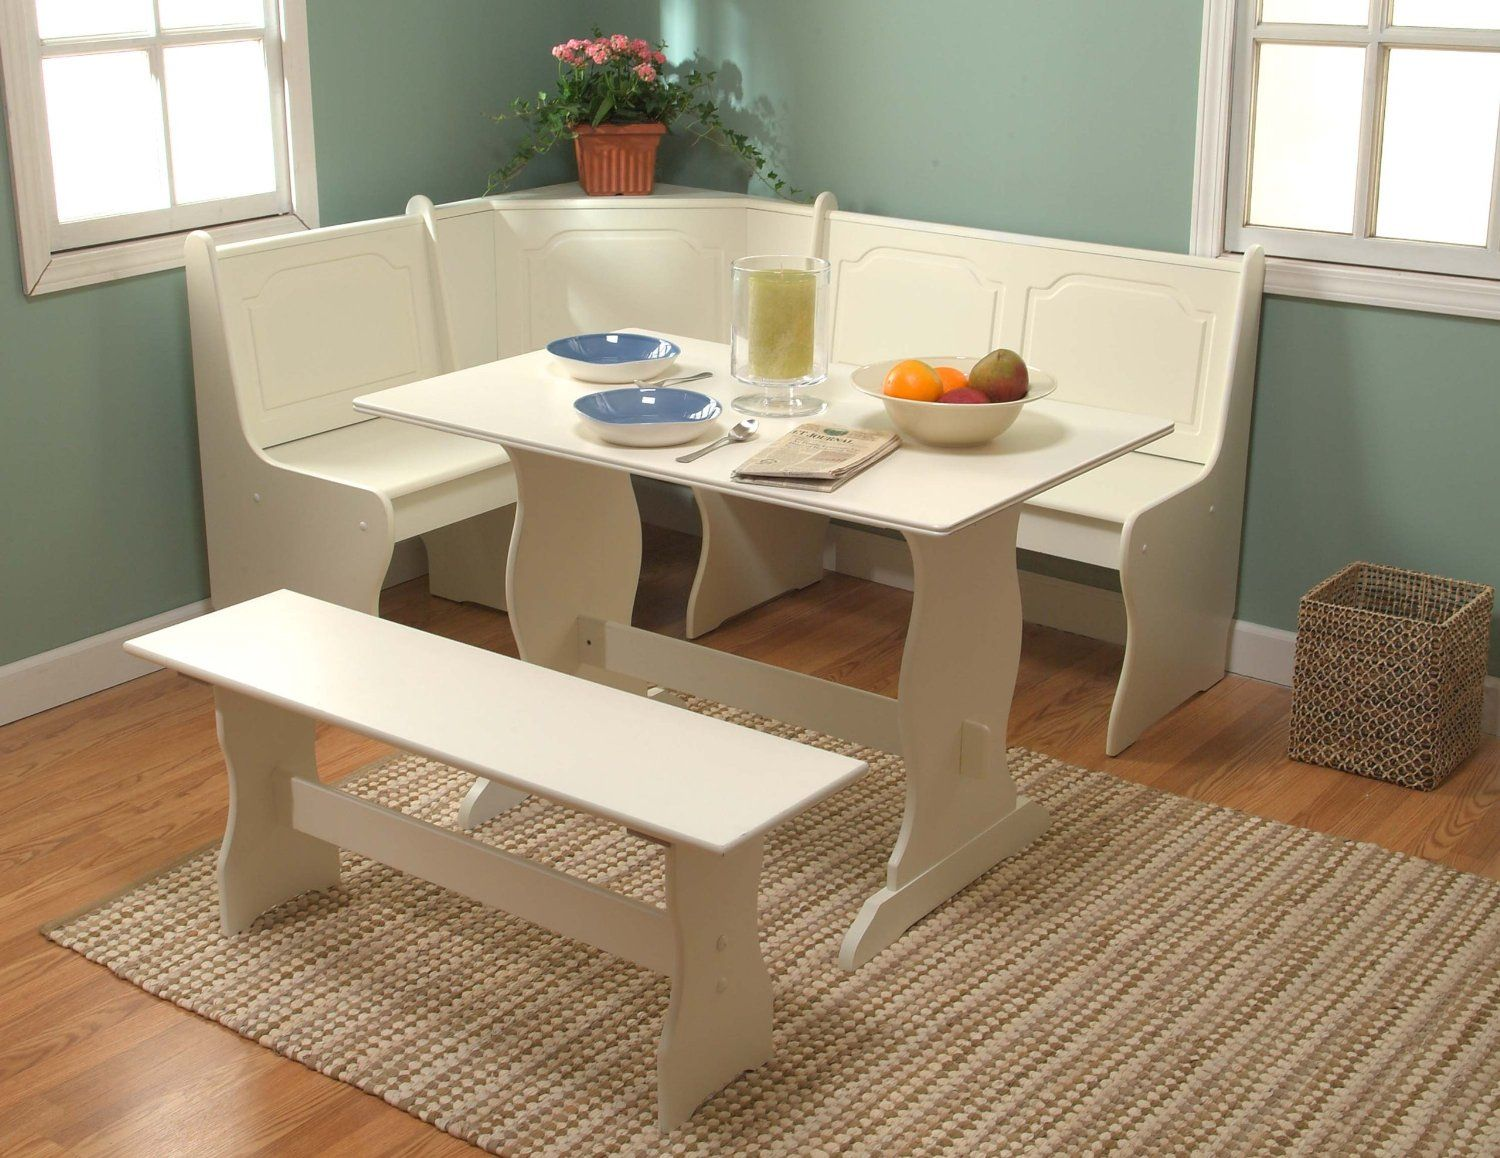 3 Piece Nook Dining Set Antique White 365 Perfect For A Small